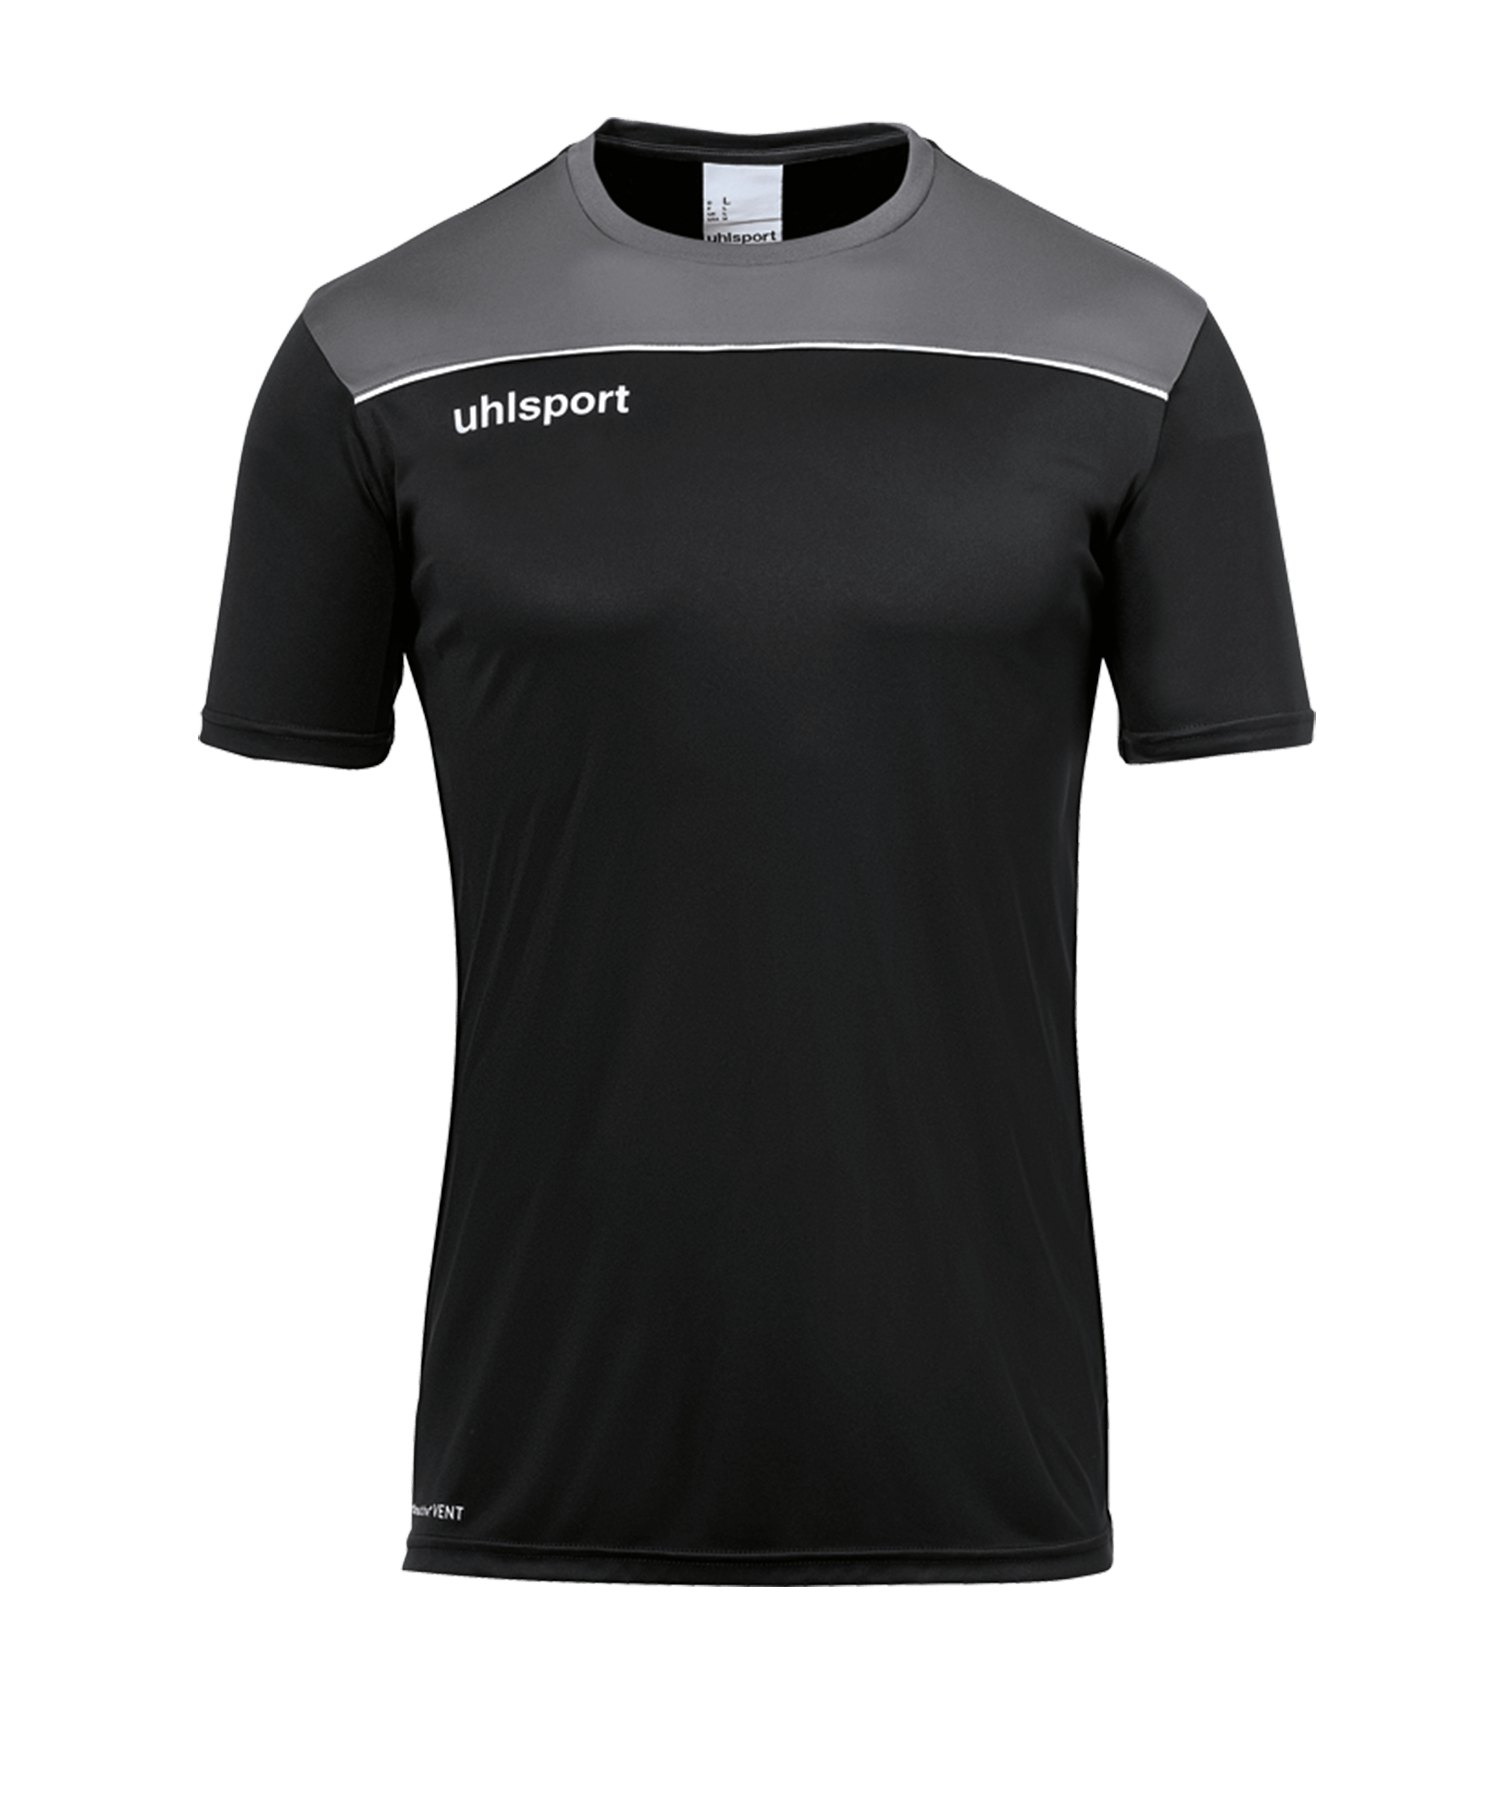 Uhlsport Offense 23 Trainingsshirt Kids F01 - schwarz